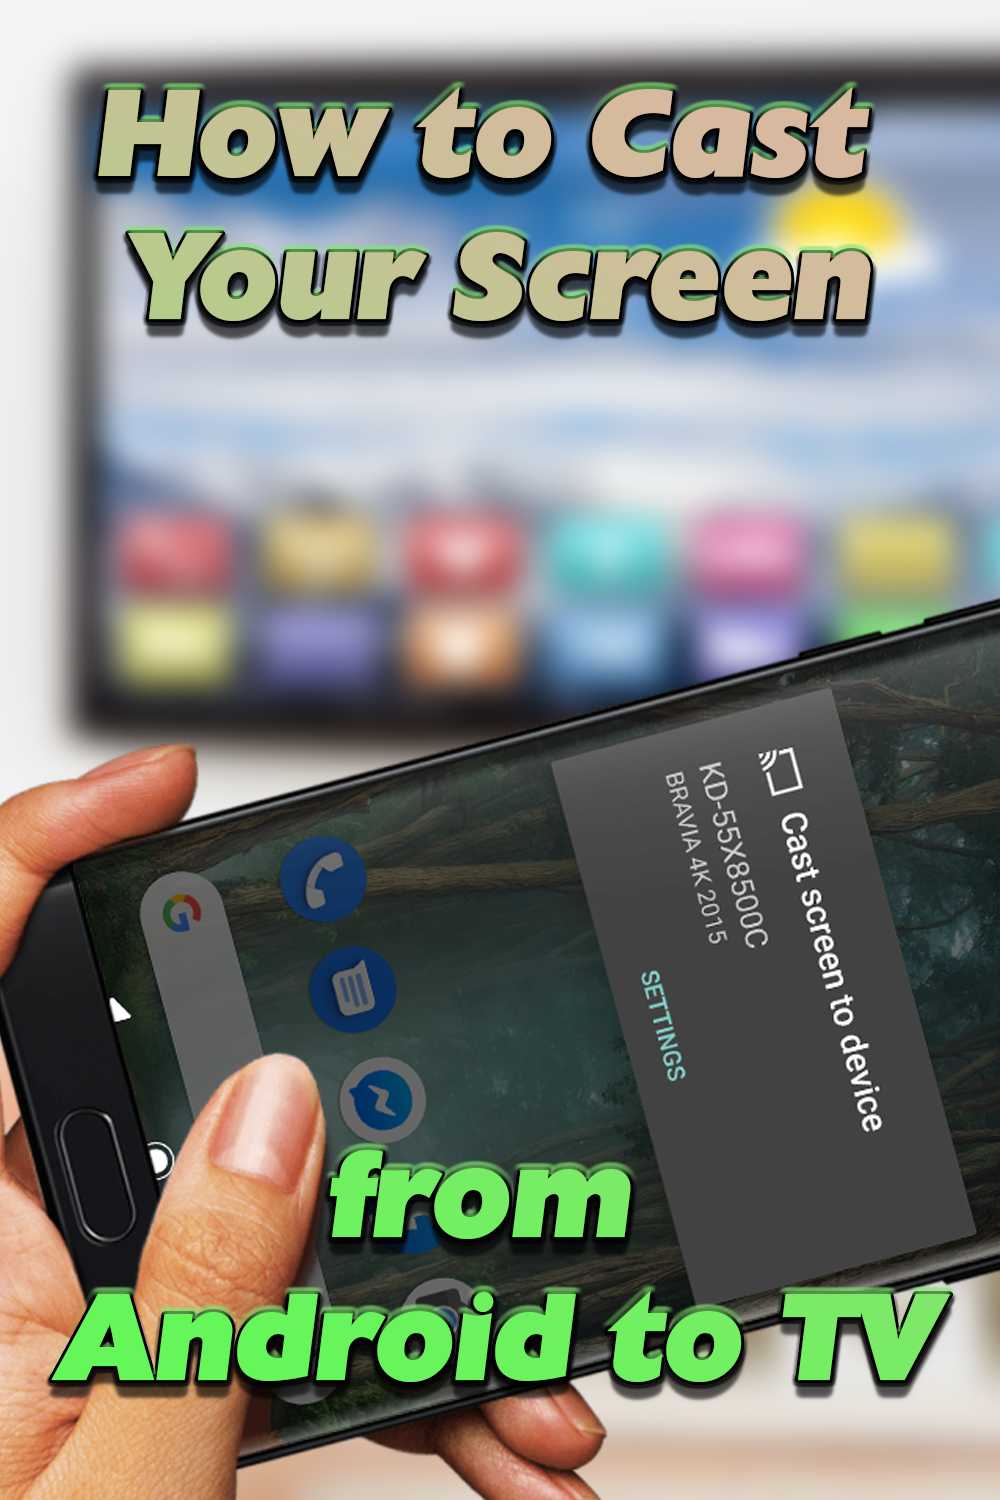 How to Cast Your Screen from Android to TV in 2020